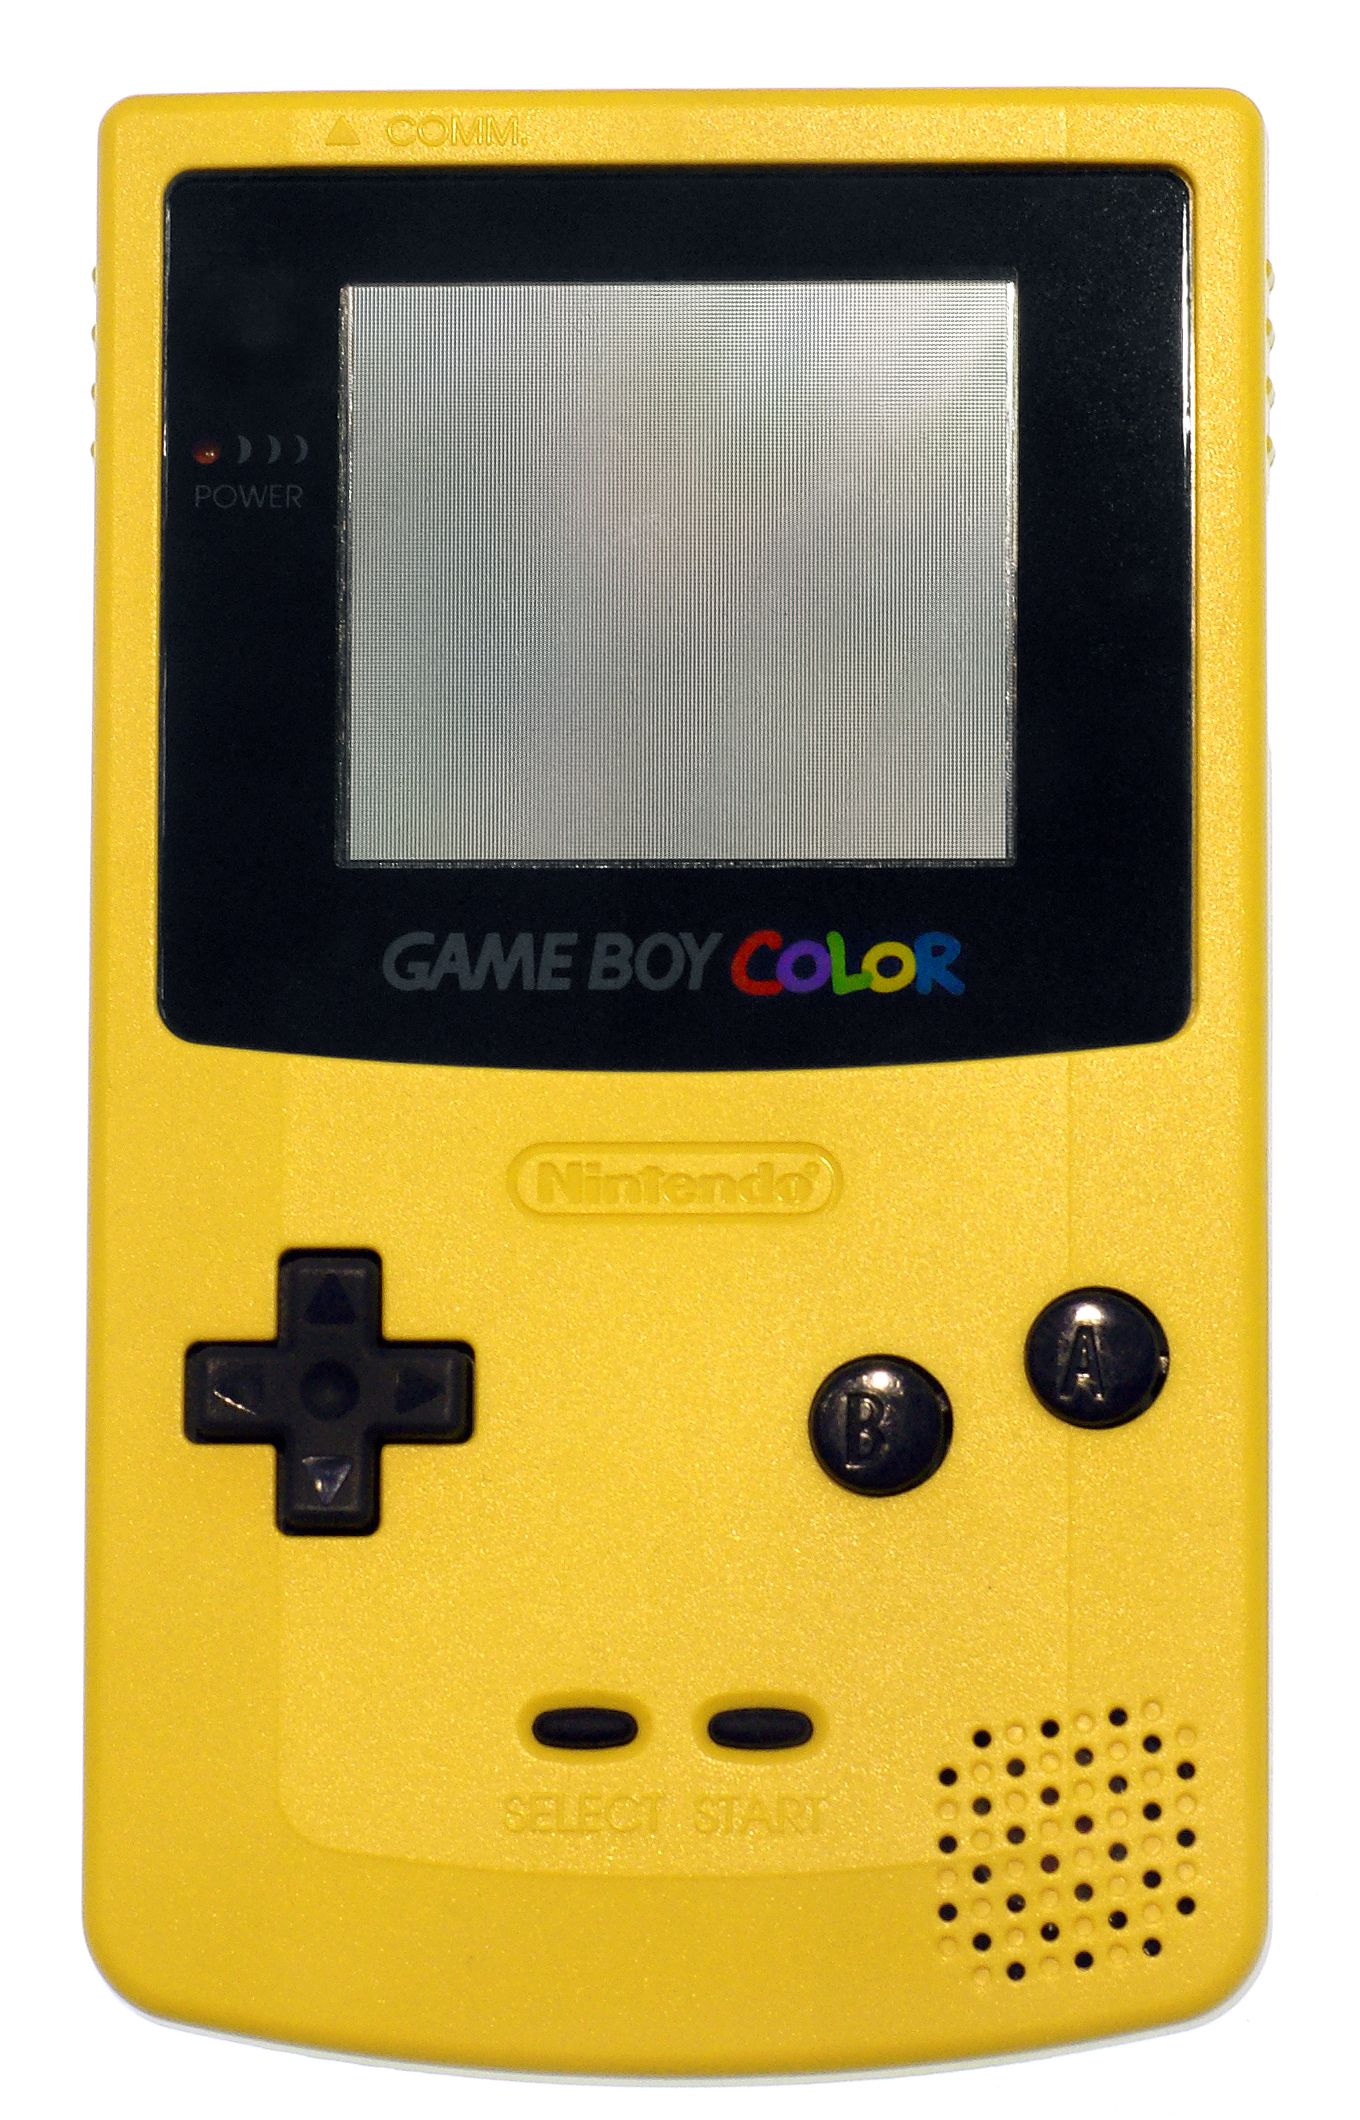 Gameboy color roms for free - Gameboy Color Roms For Free 19